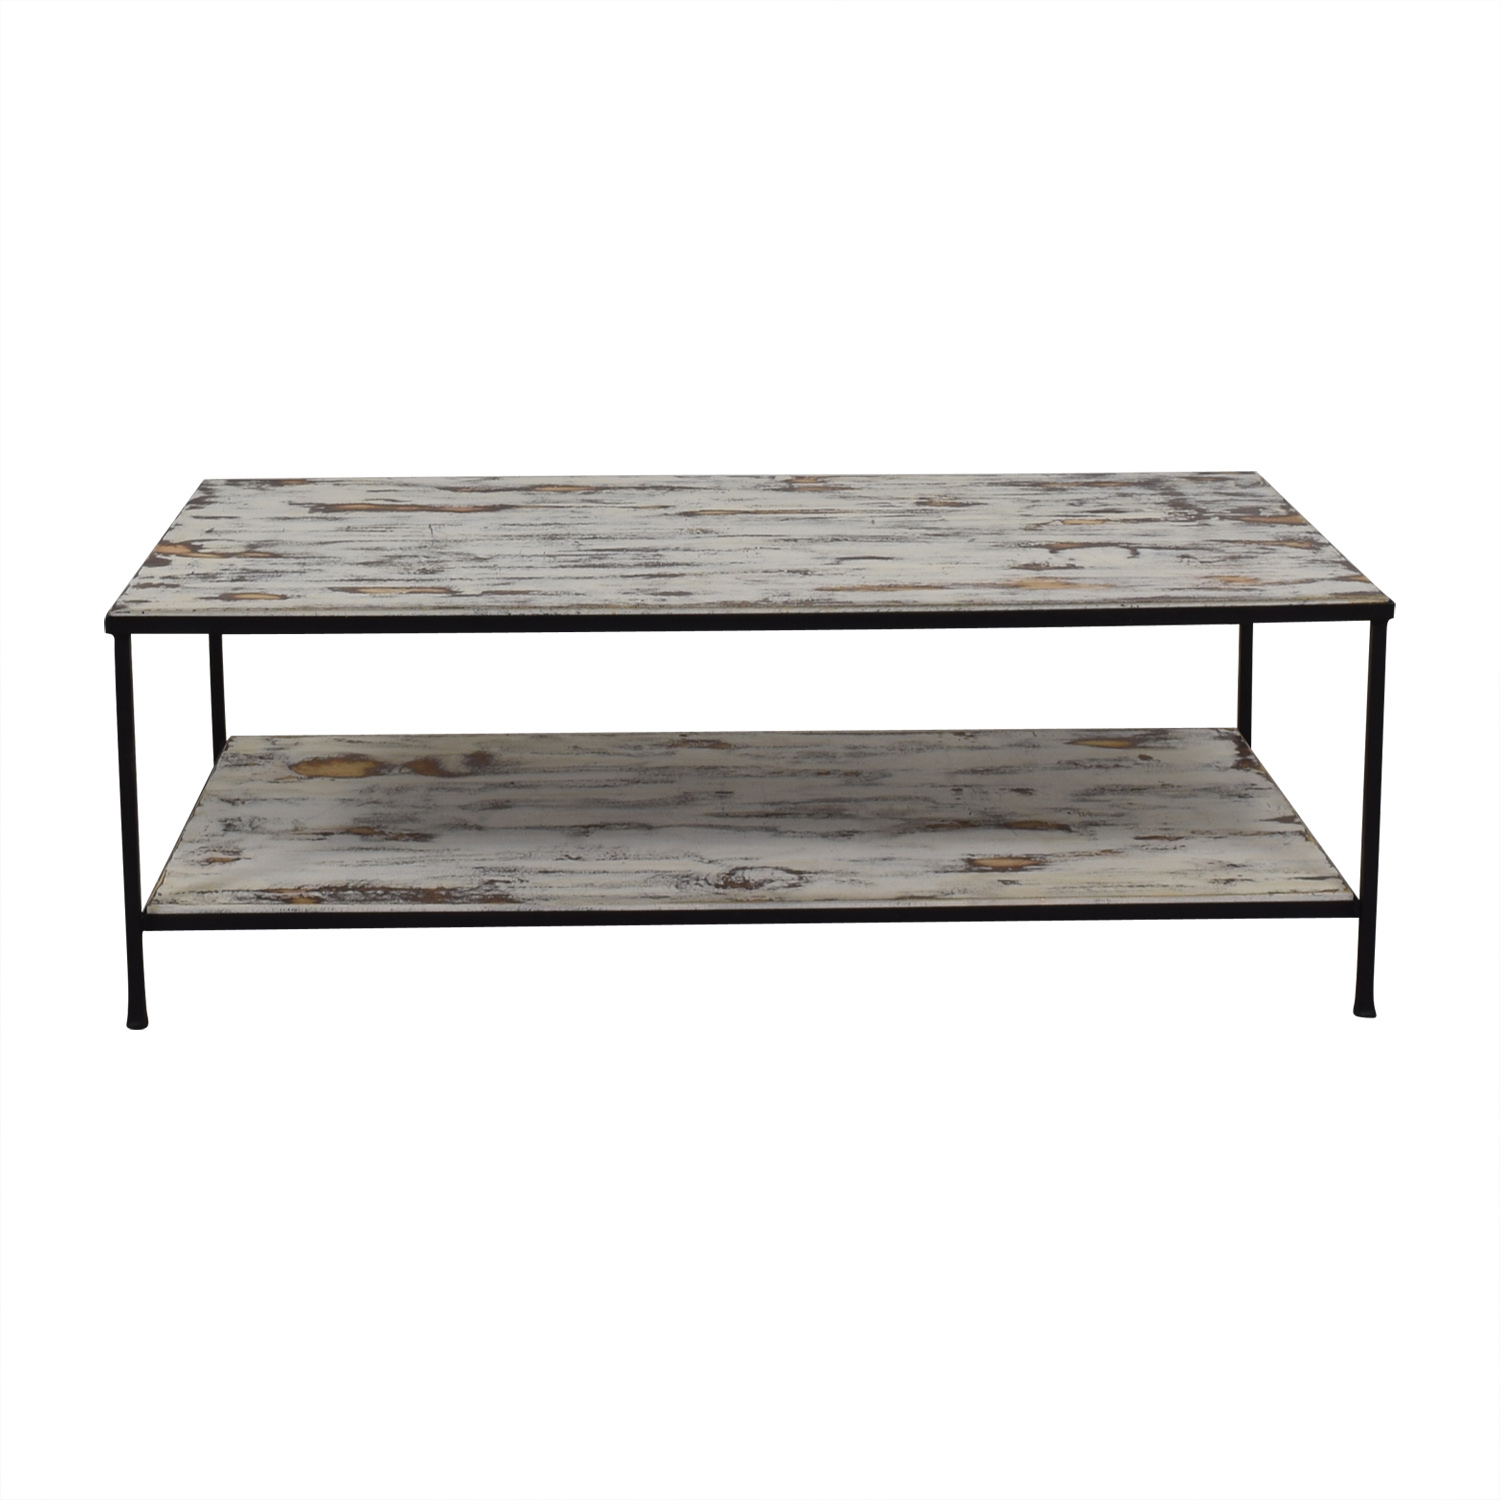 Rustic Distressed Wood Coffee Table price